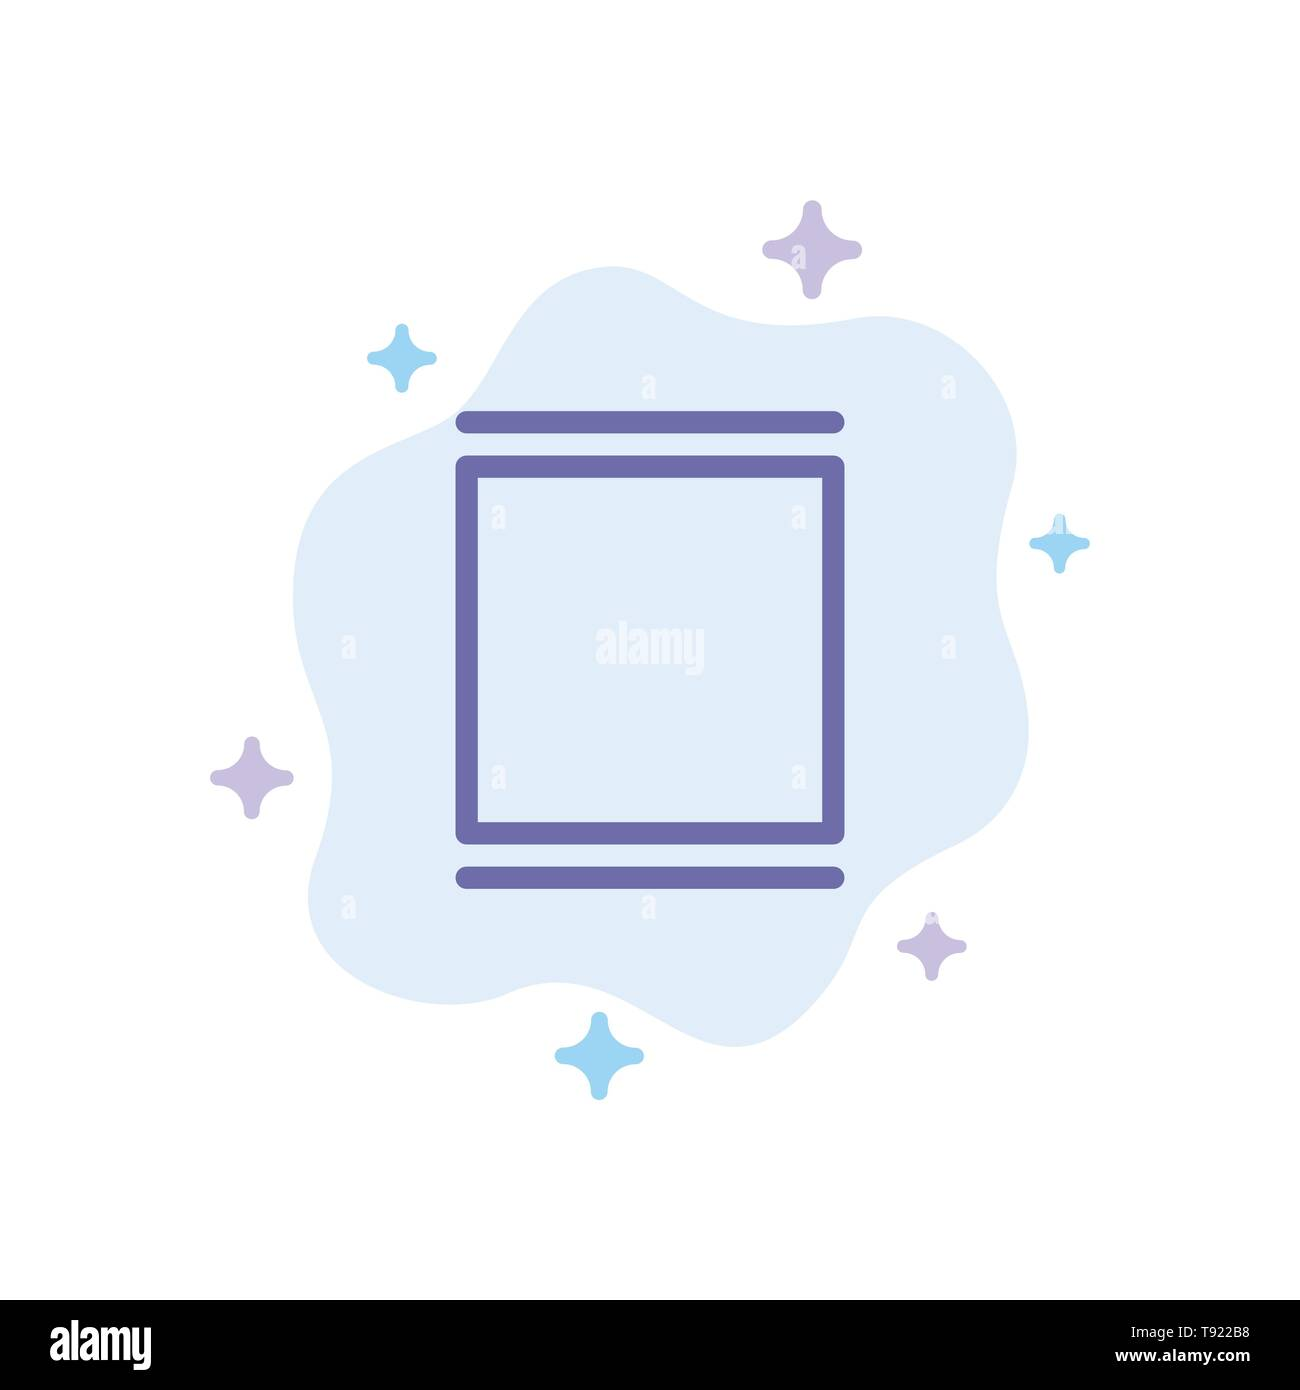 Gallery, Instagram, Sets, Timeline Blue Icon on Abstract Cloud Background - Stock Image